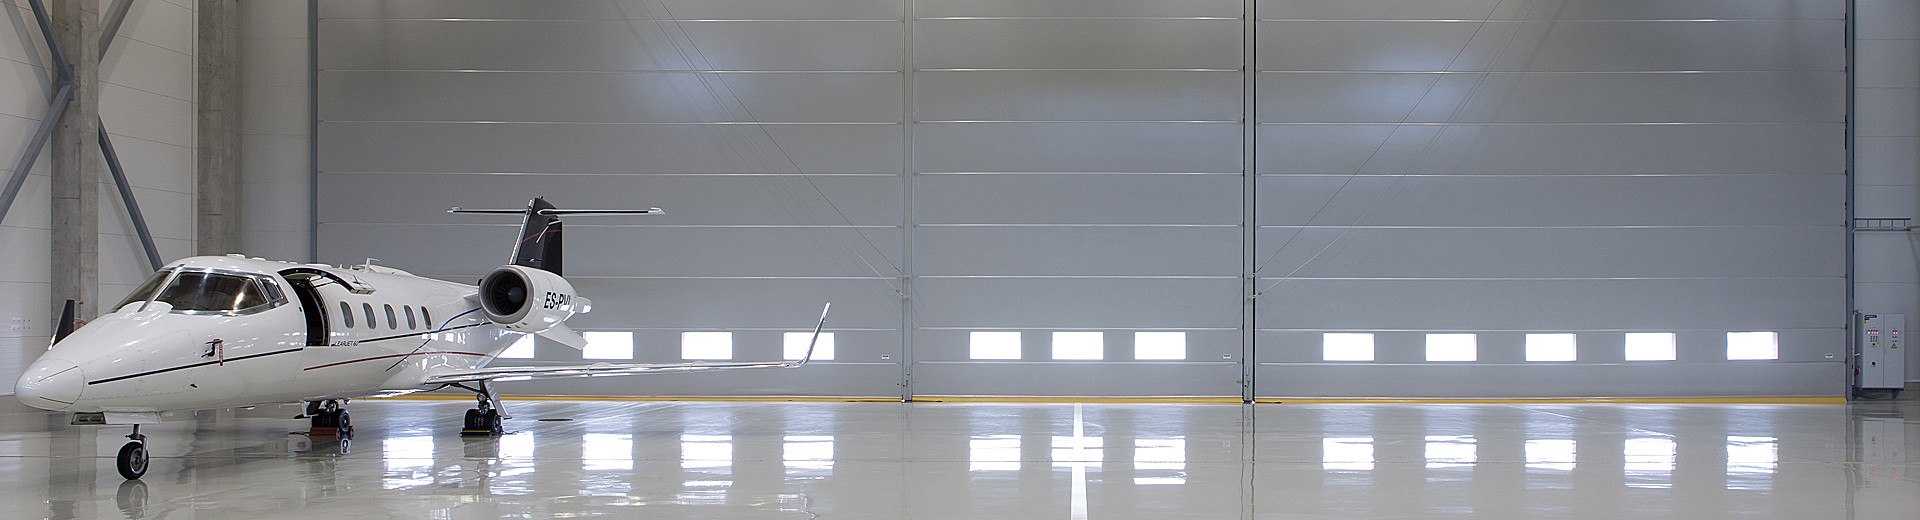 Champion Door Hangar Doors And Large Industrial Doors Champion Door